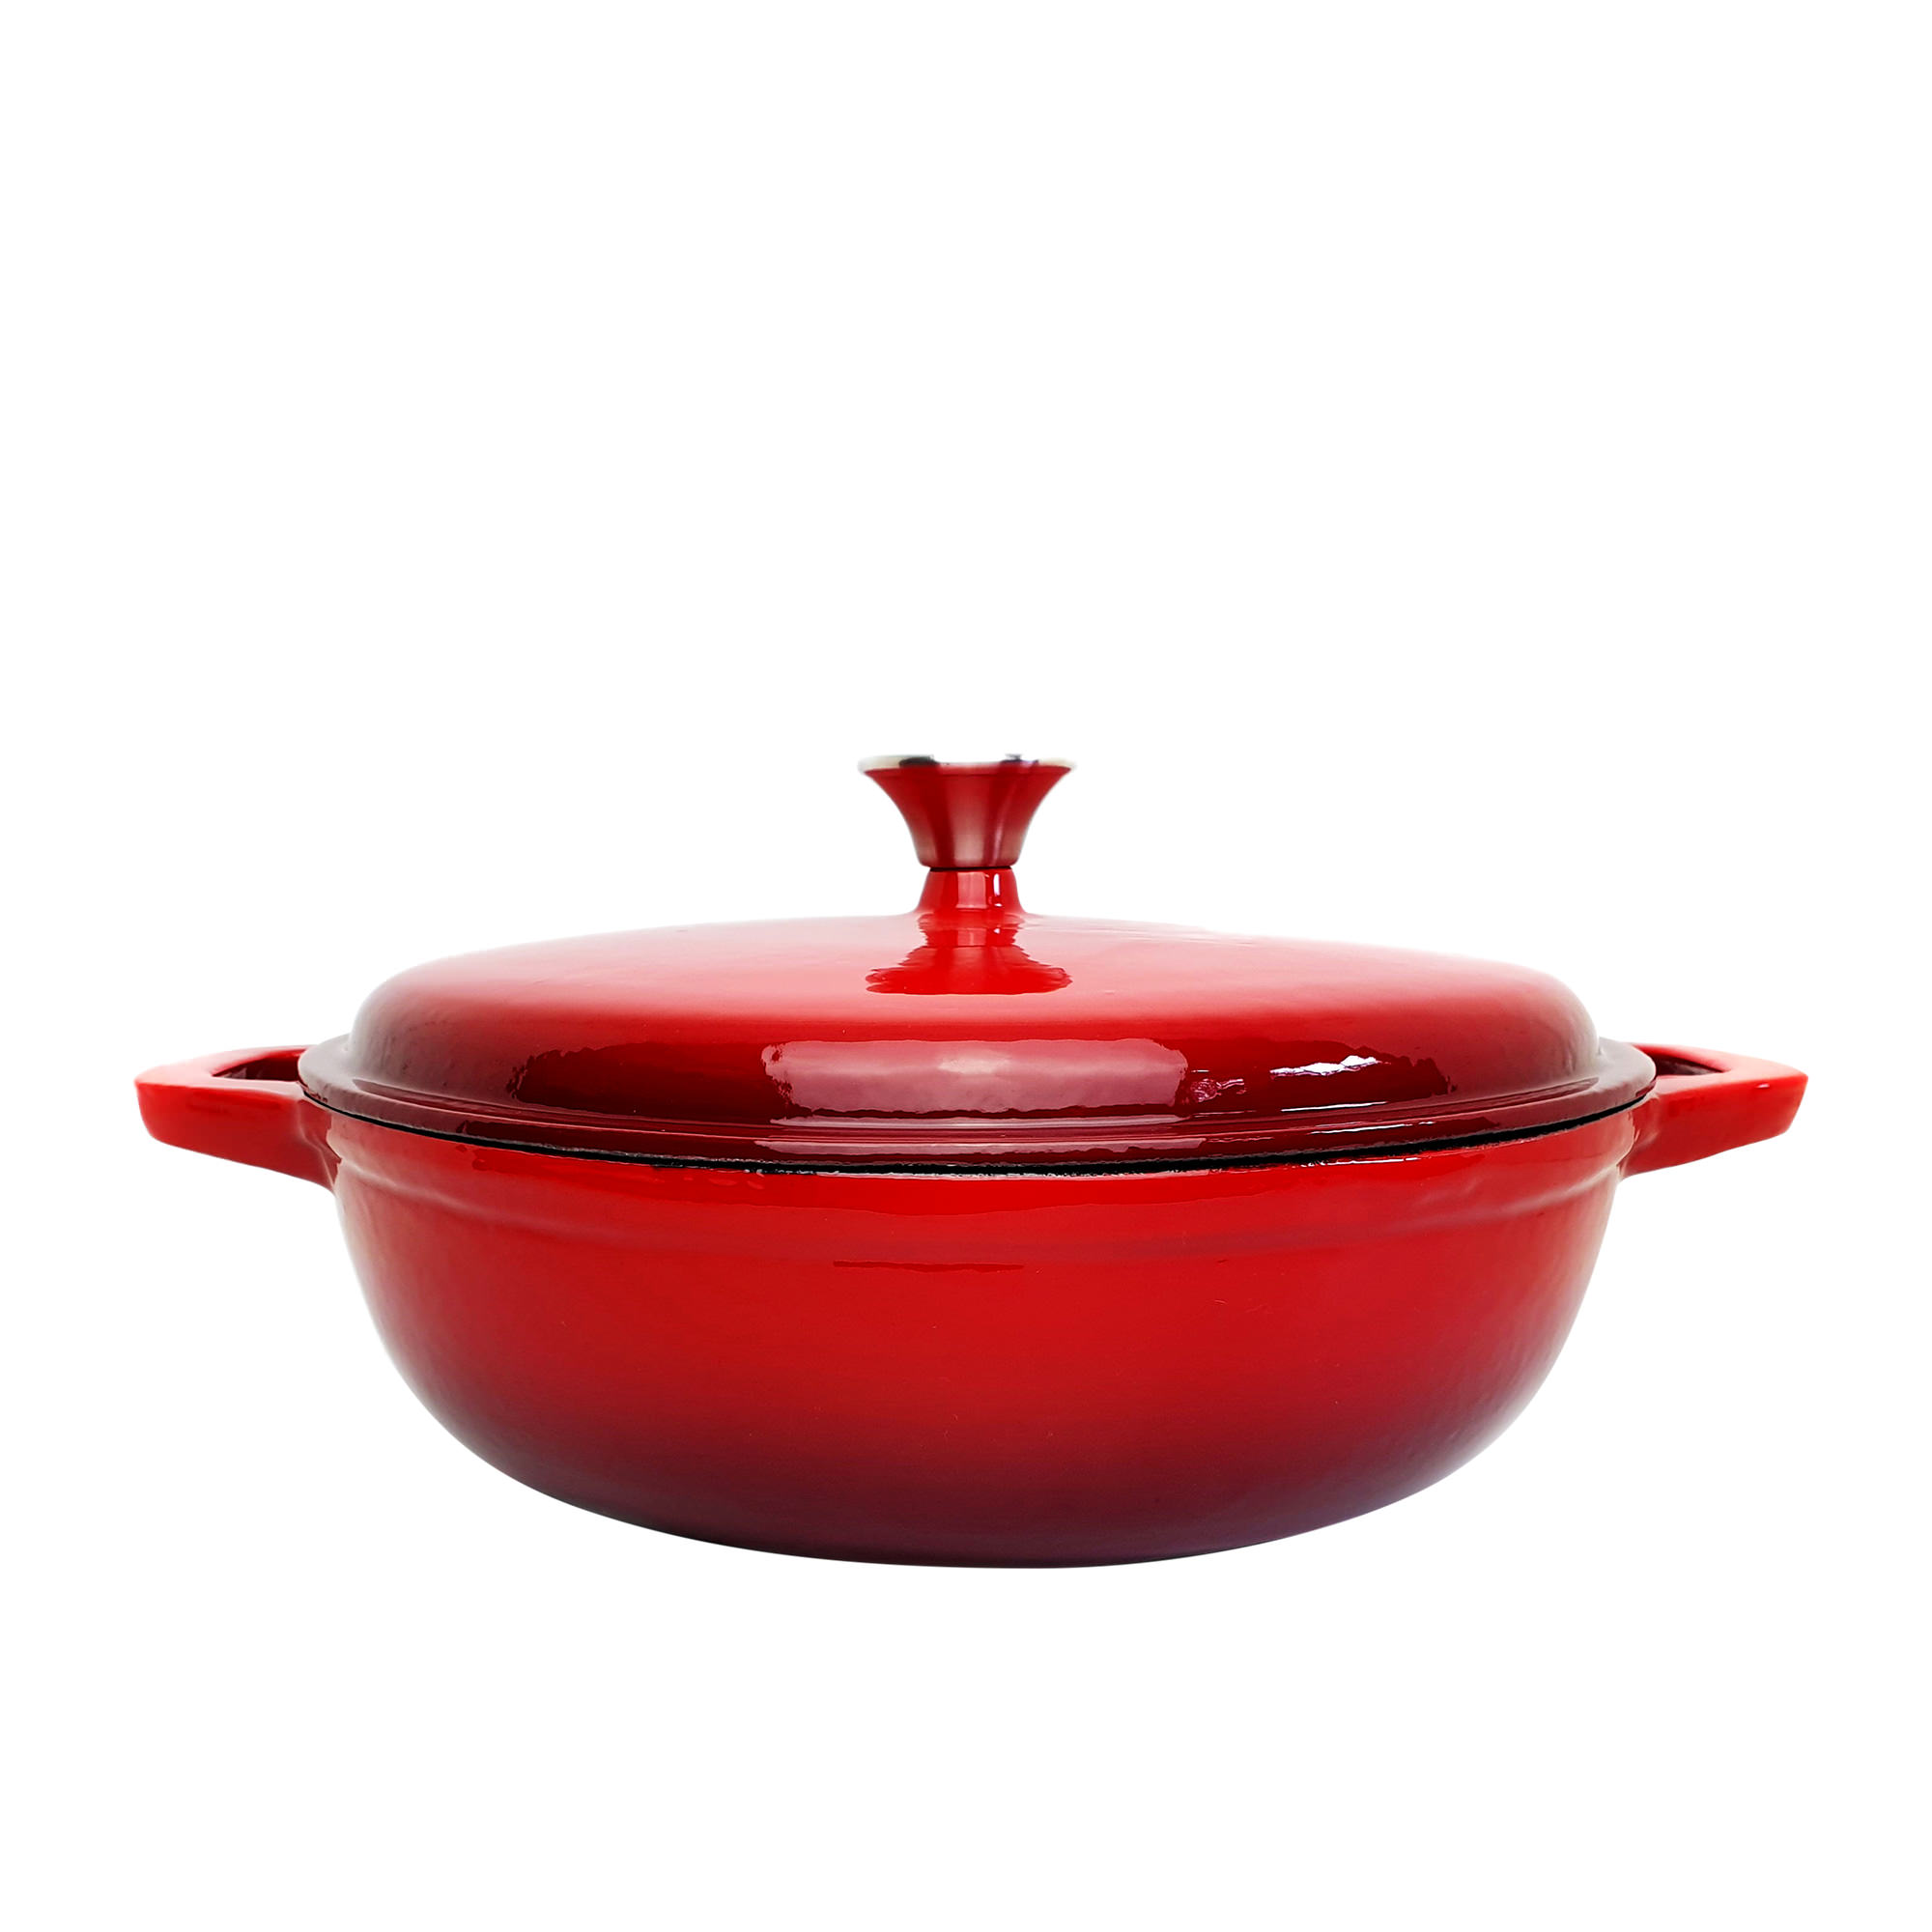 Classica Enamelled Cast Iron Saute Pan 30cm Red